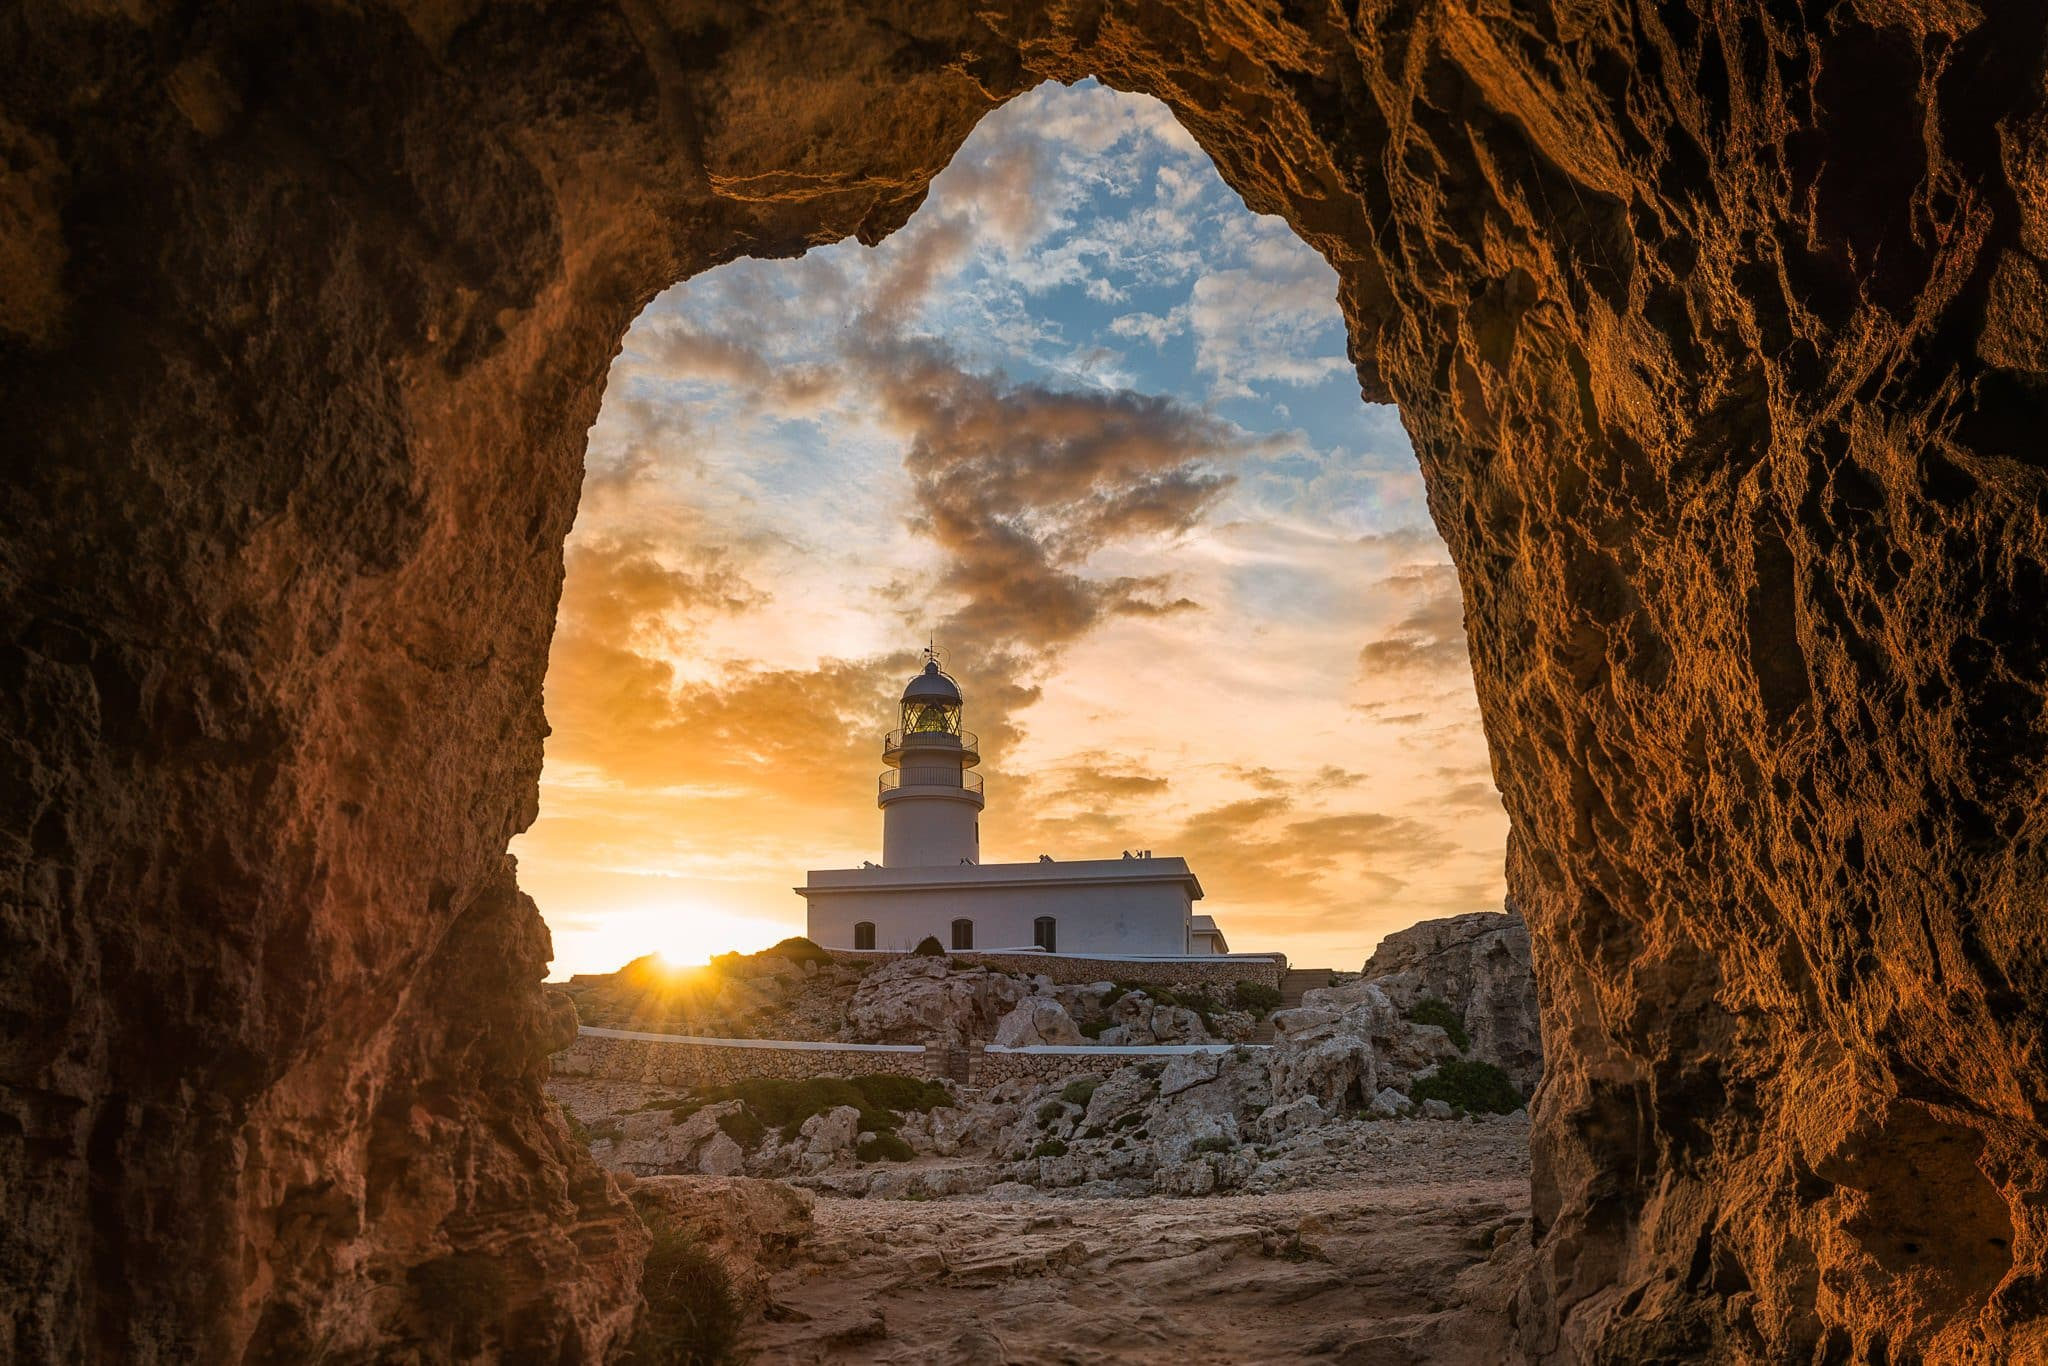 Menorca Lighthouse - Cap de Cavallería sunset shots on PhotoPills Camp.